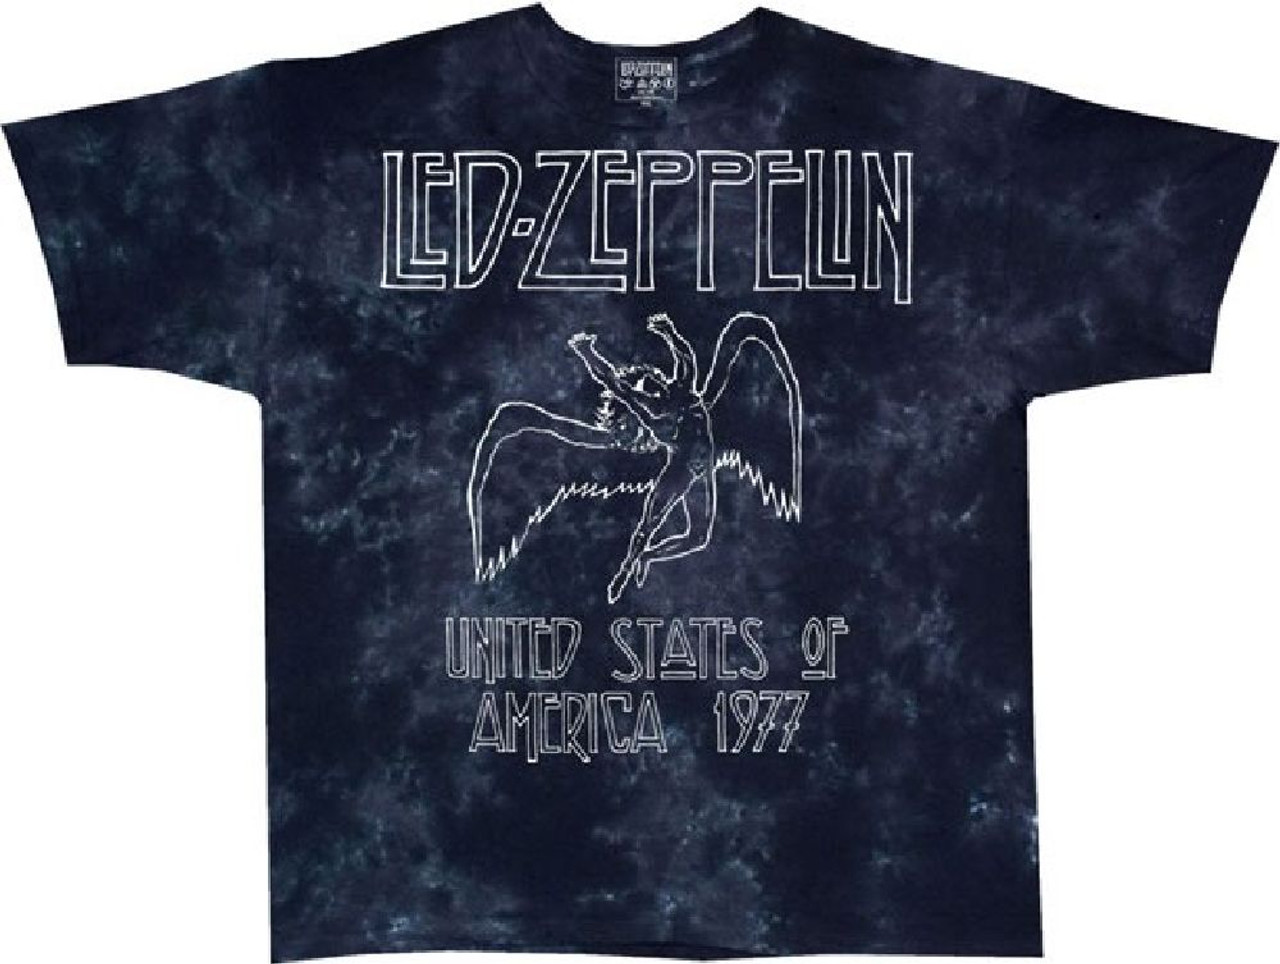 48bcf2c82 Led Zeppelin United States of America 1977 Tour Men s Black Tie-Dye Concert  T-